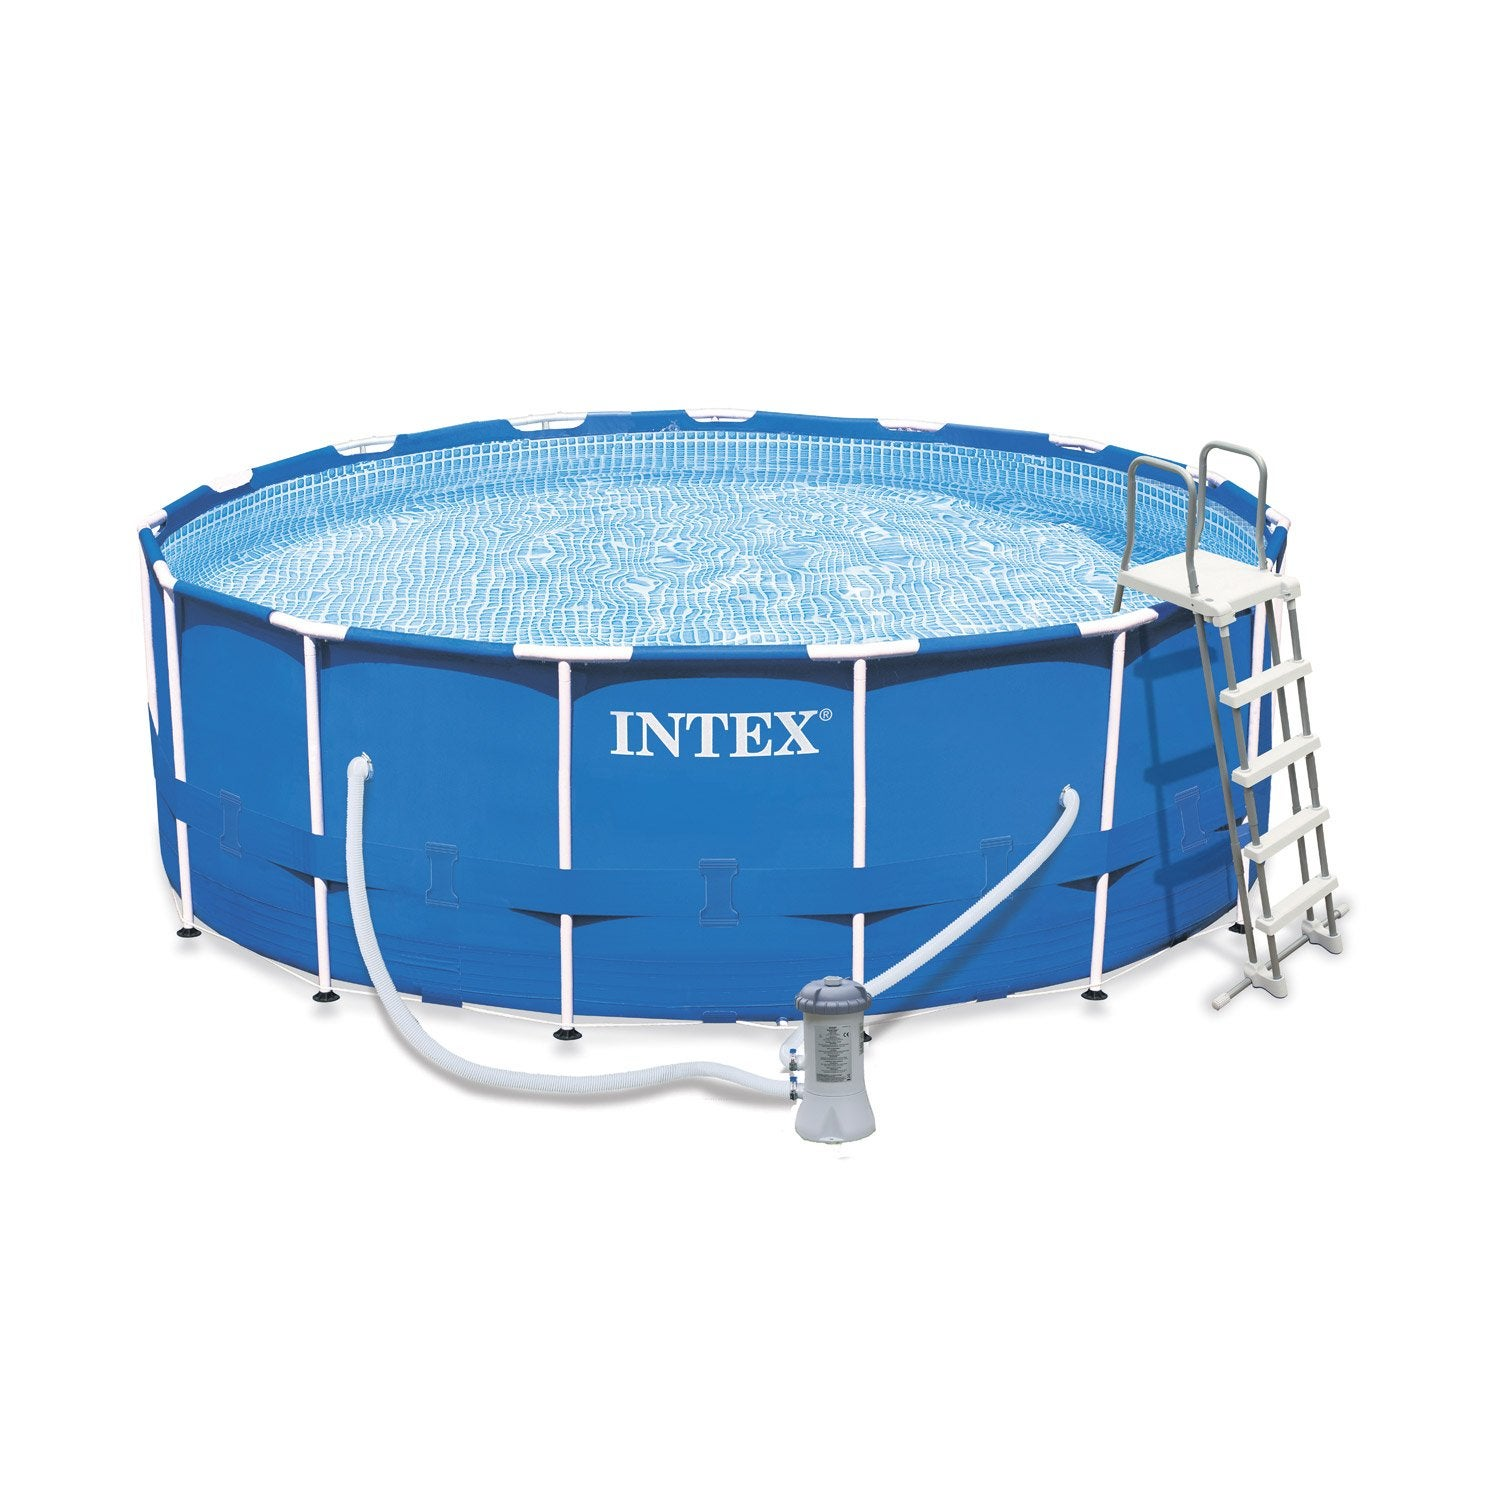 Piscine hors sol autoportante tubulaire metal frame intex for Piscine hors sol hauteur 1m60